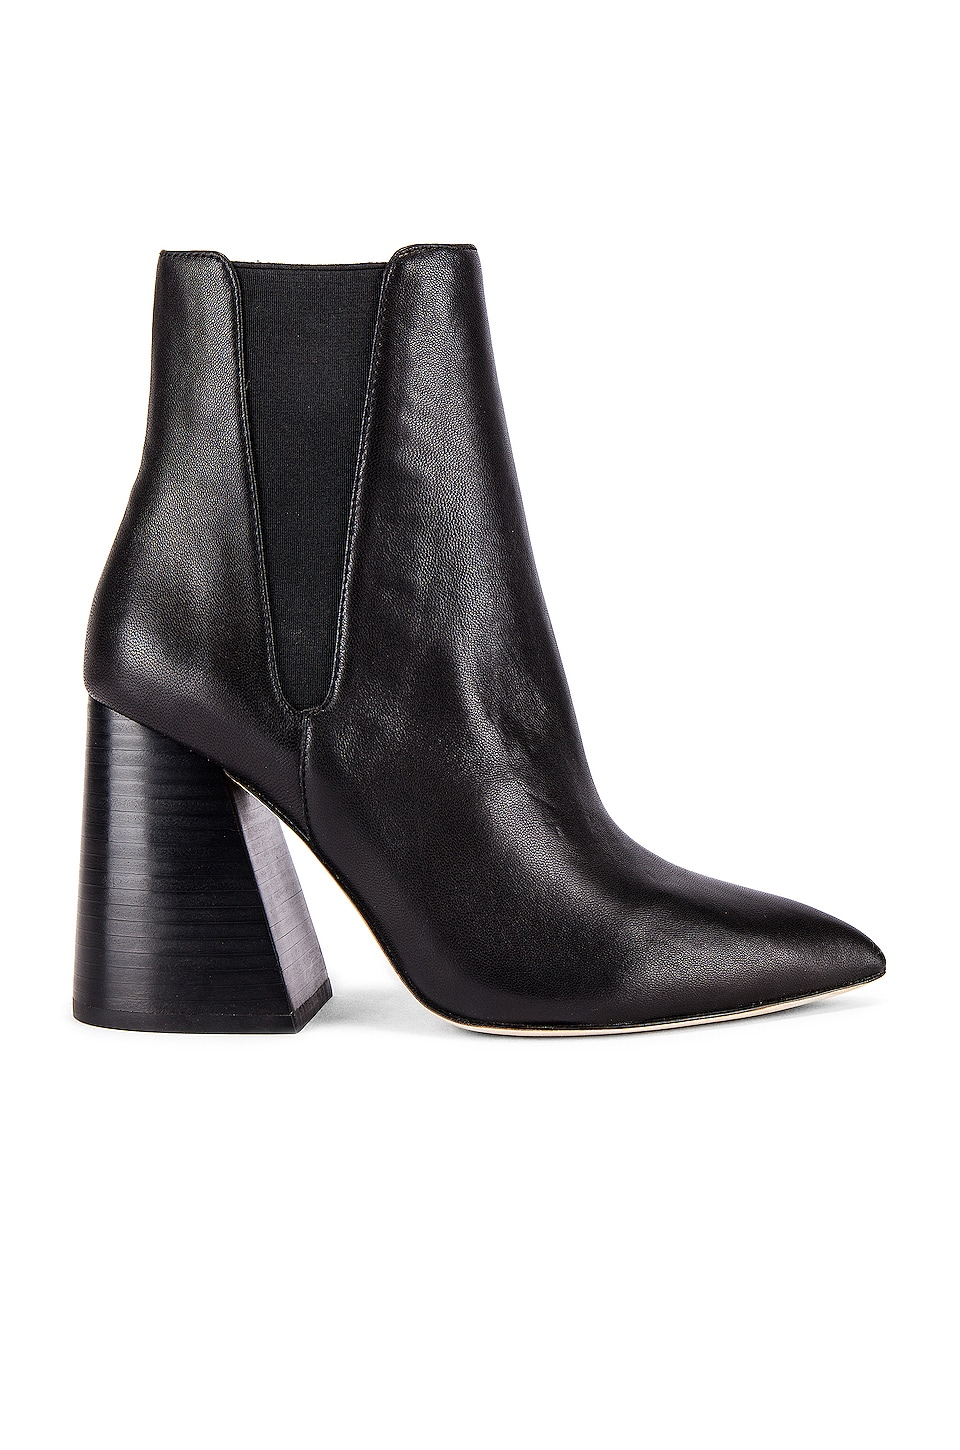 Joie Abrianna Bootie in Black